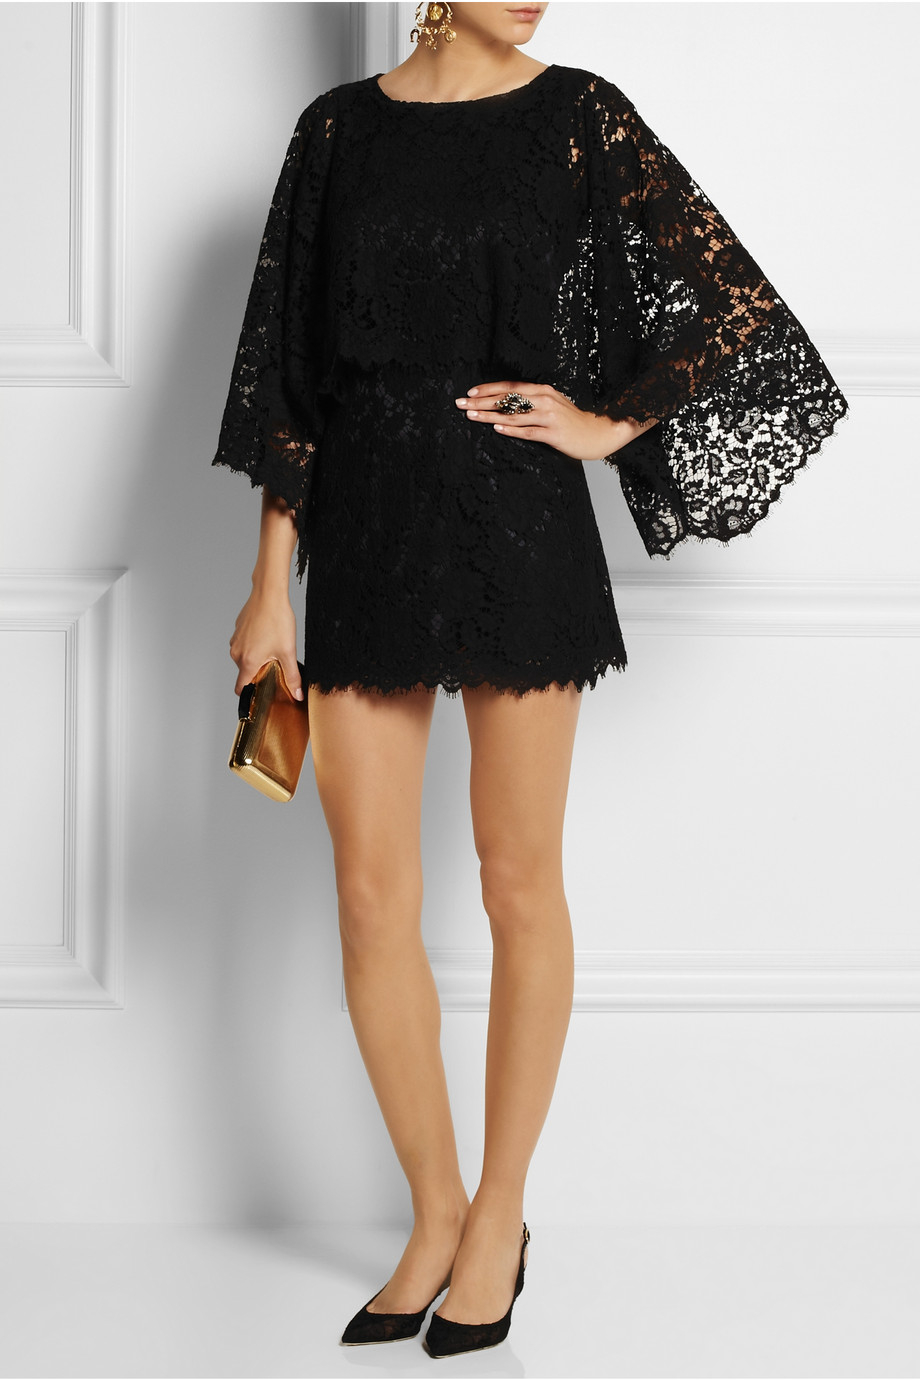 42a5b152a27 Dolce   Gabbana Lace Mini Dress in Black - Lyst